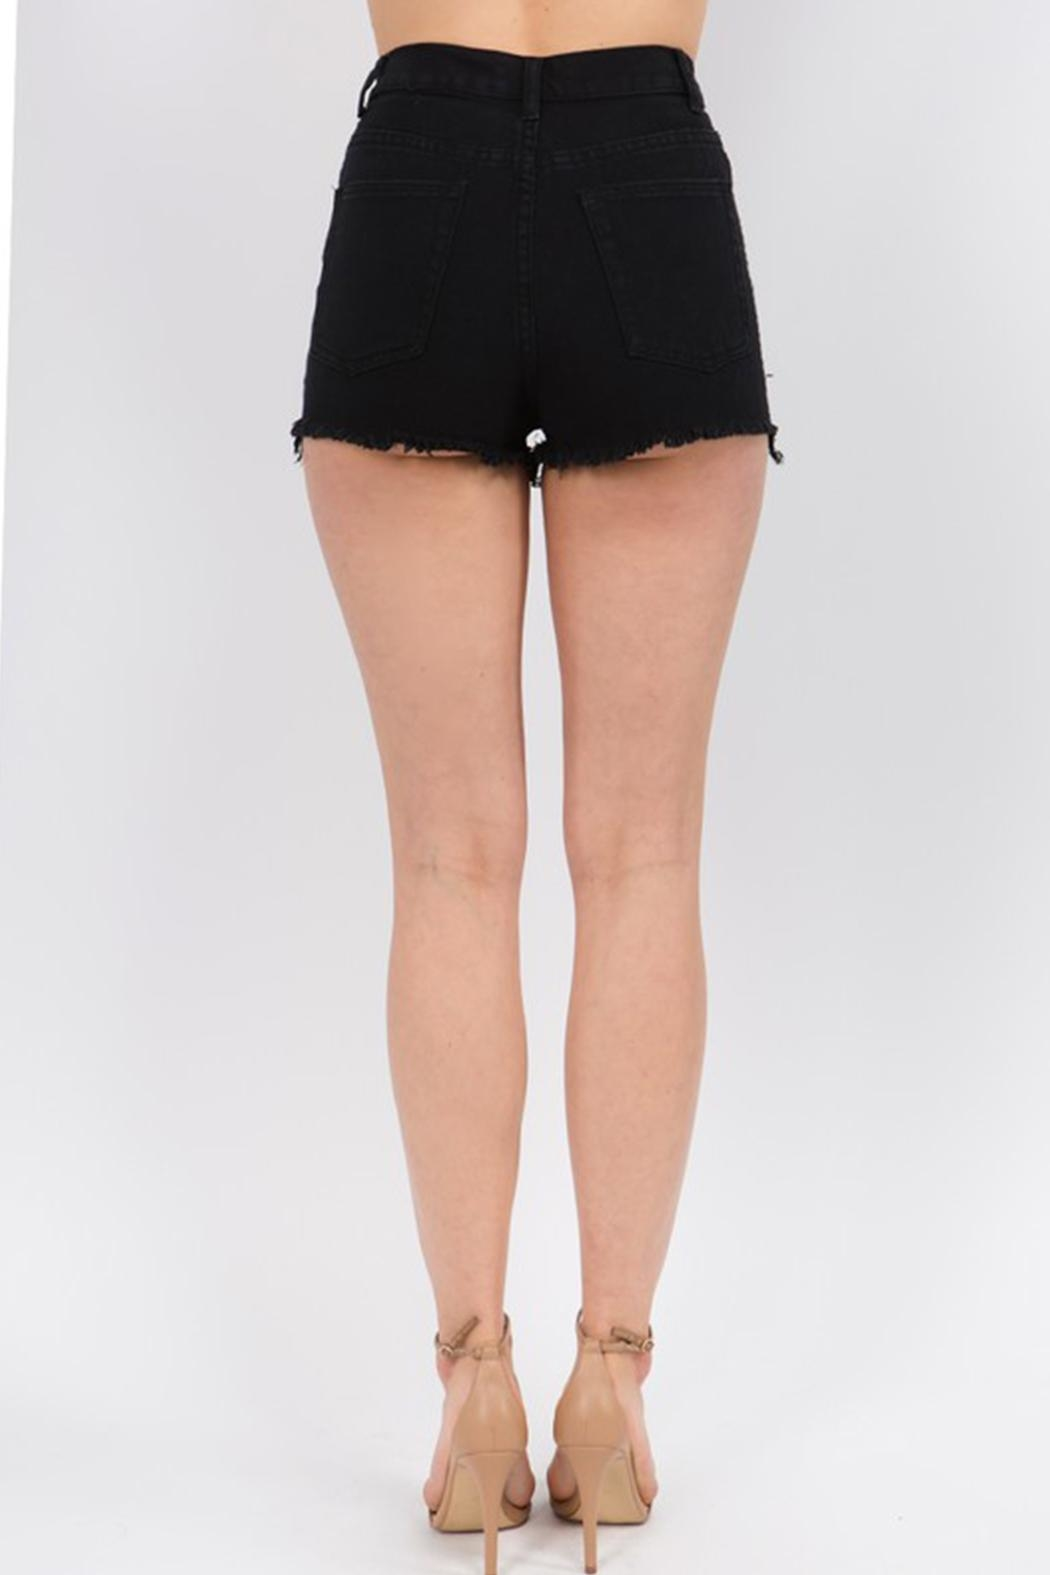 Signature 8 Check Stripe Shorts - Side Cropped Image